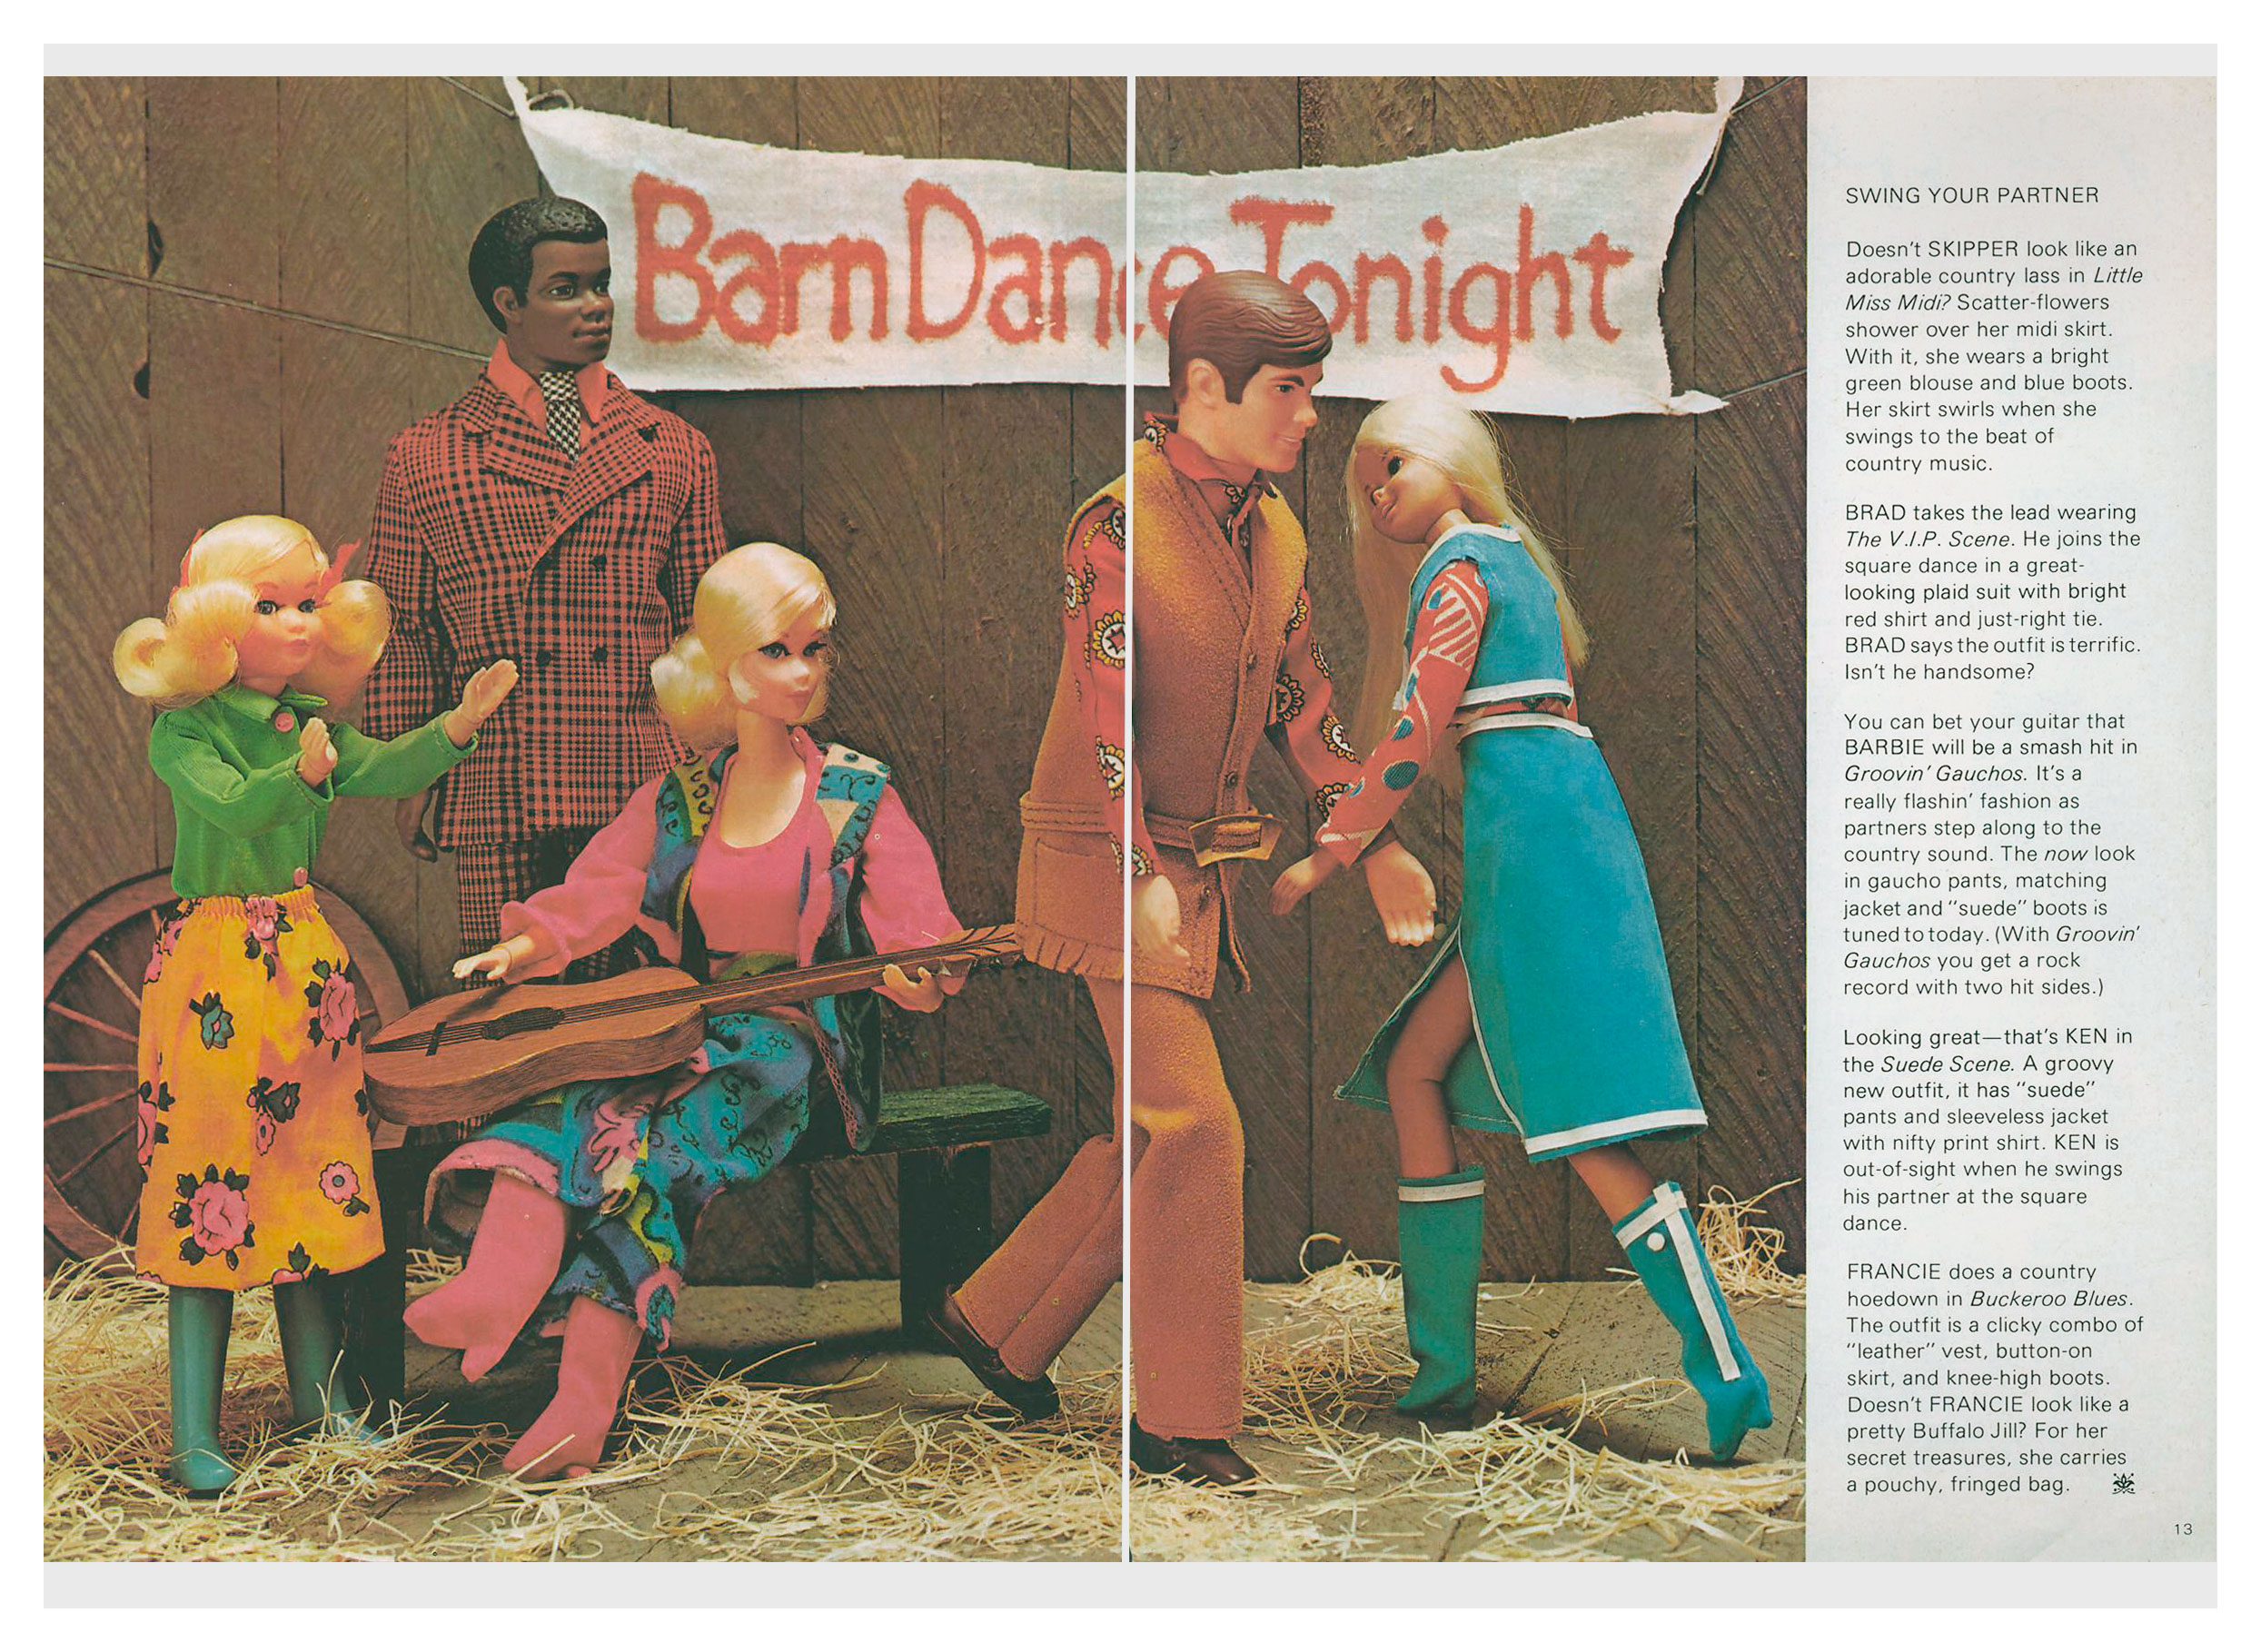 From 1971 Halloween Barbie Talk magazine